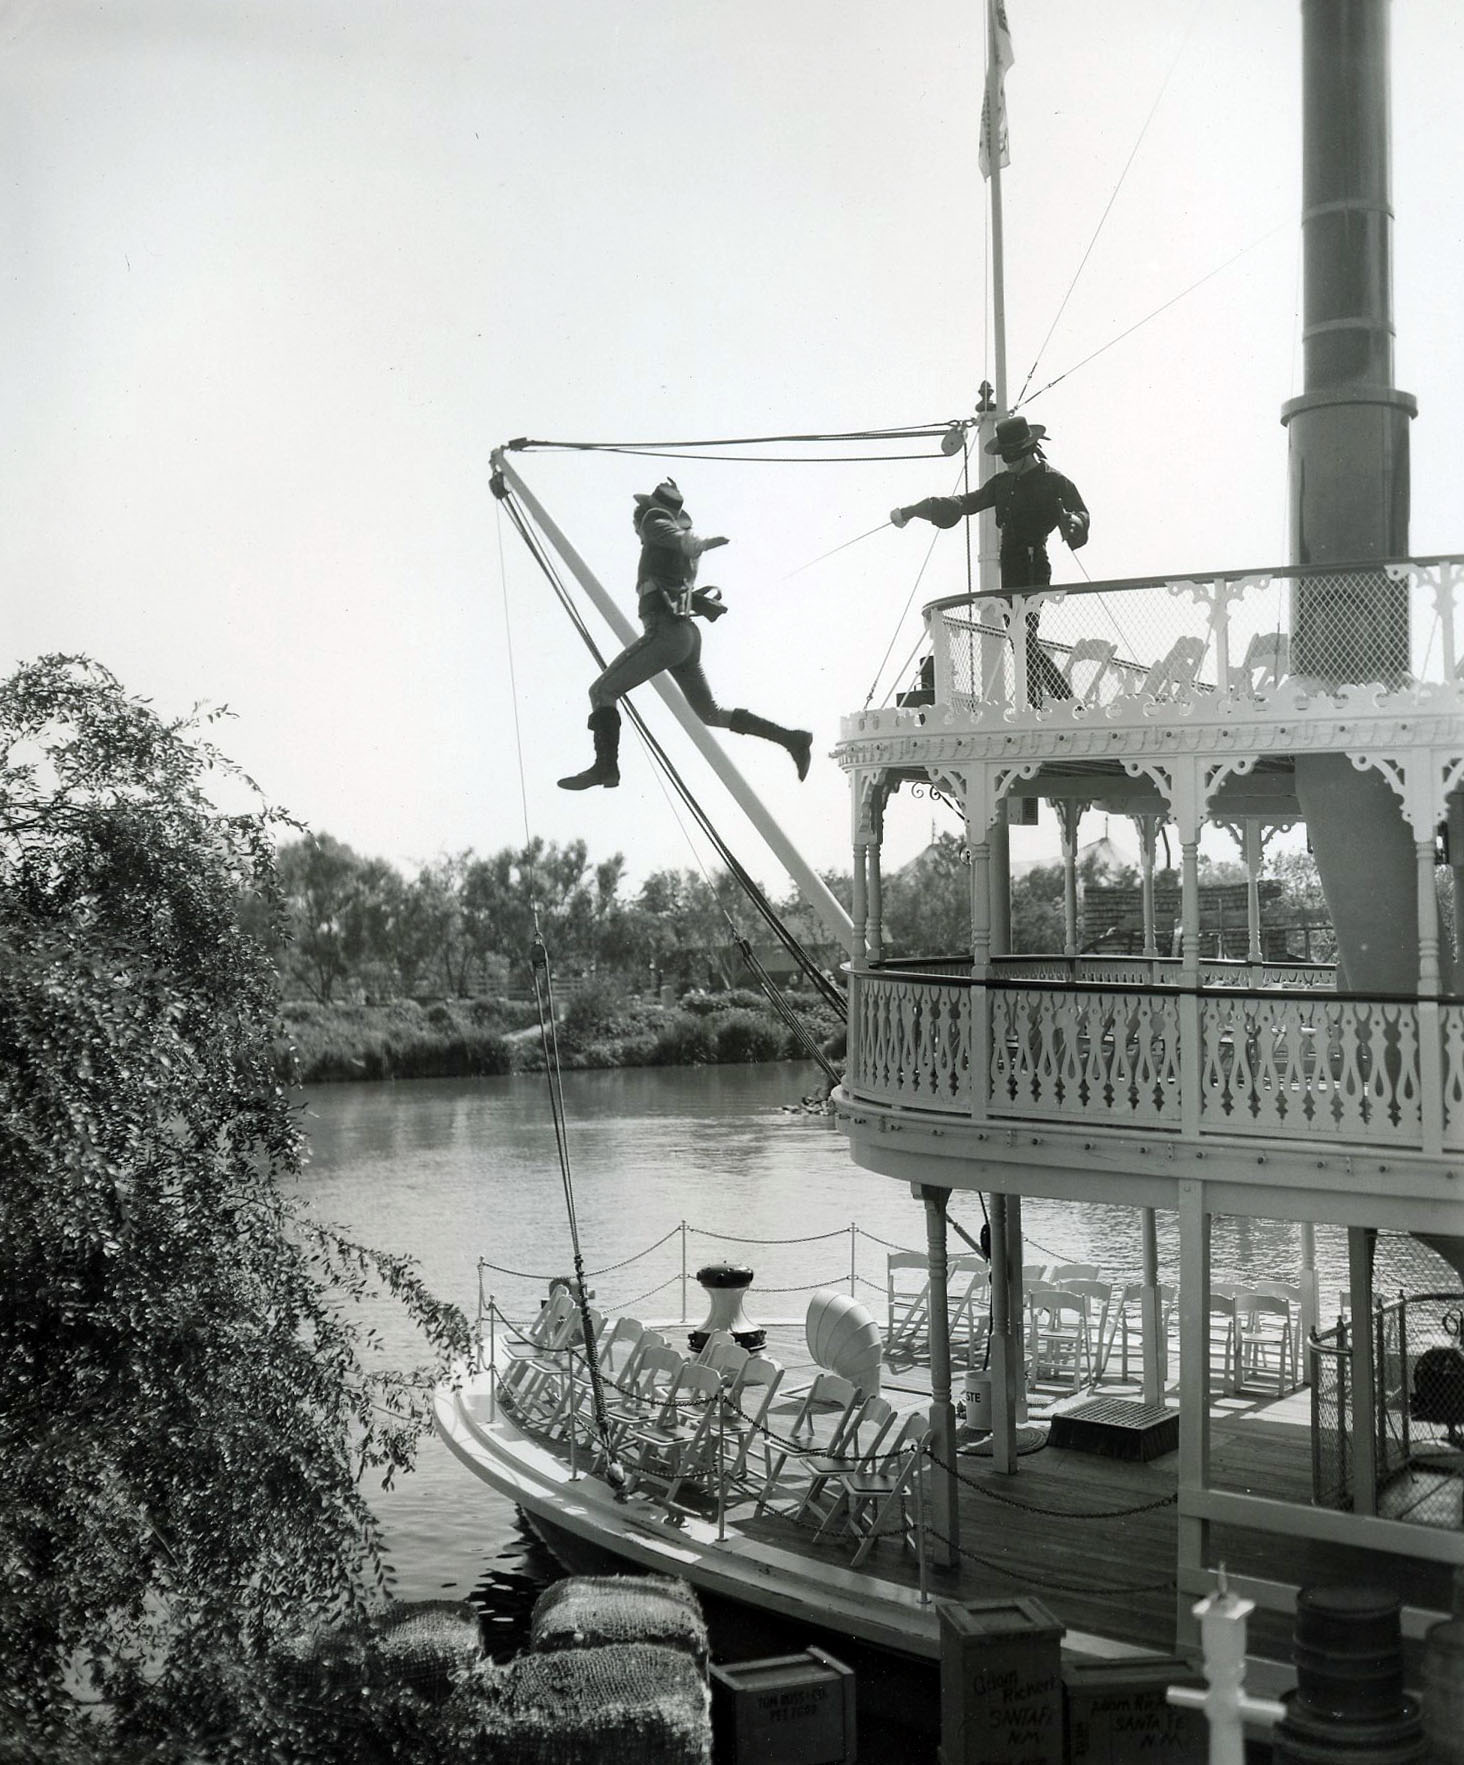 American Experience: Early Problems? - Disney History Institute